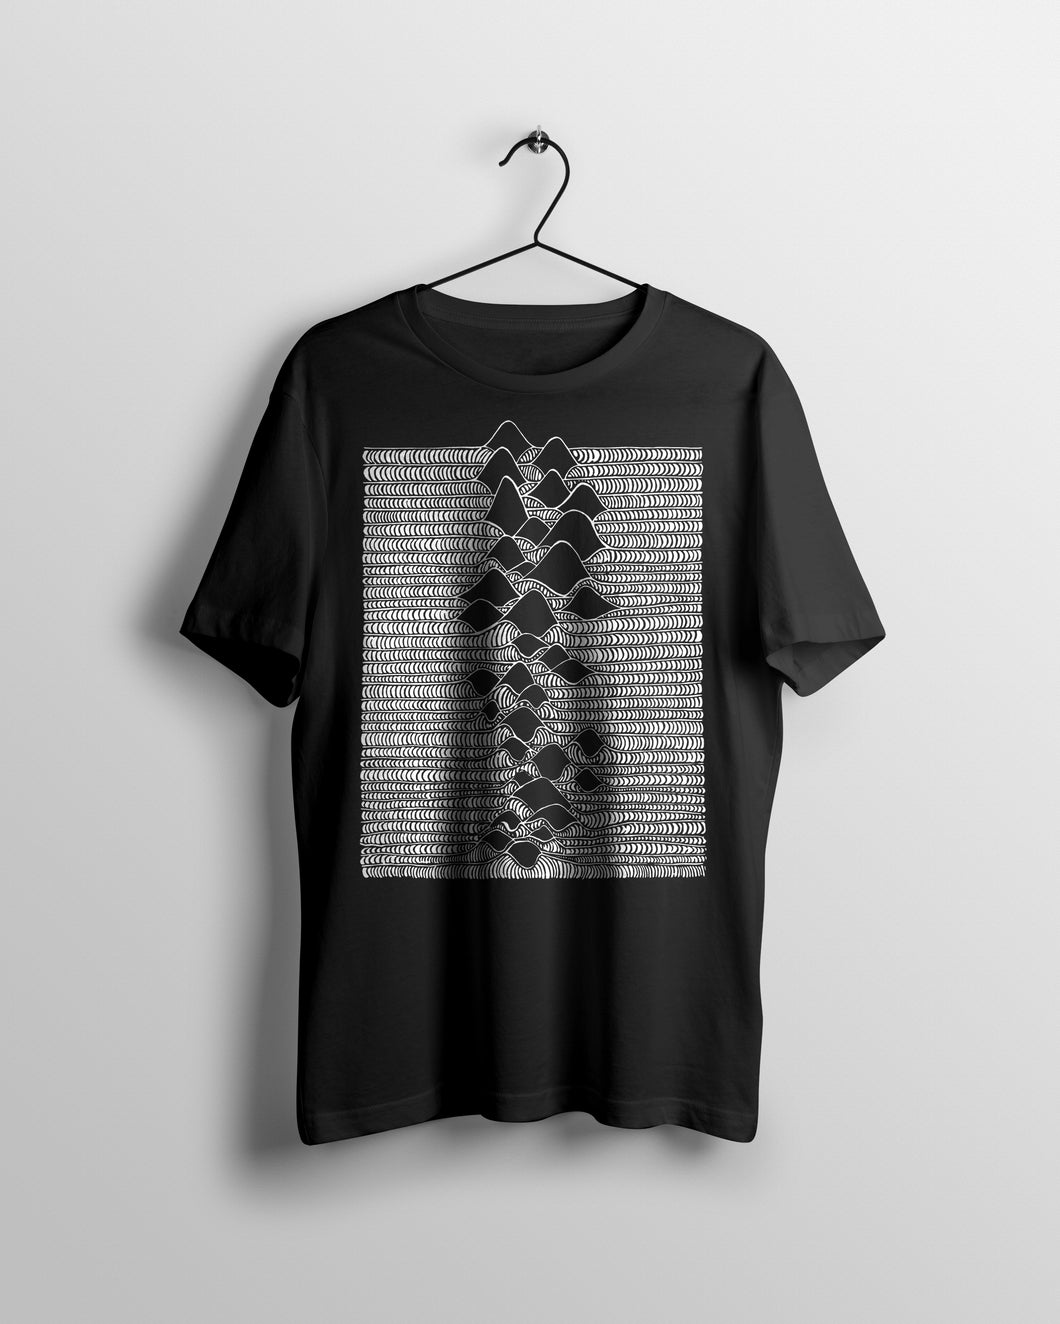 Known Pleasures - (unisex t-shirt)